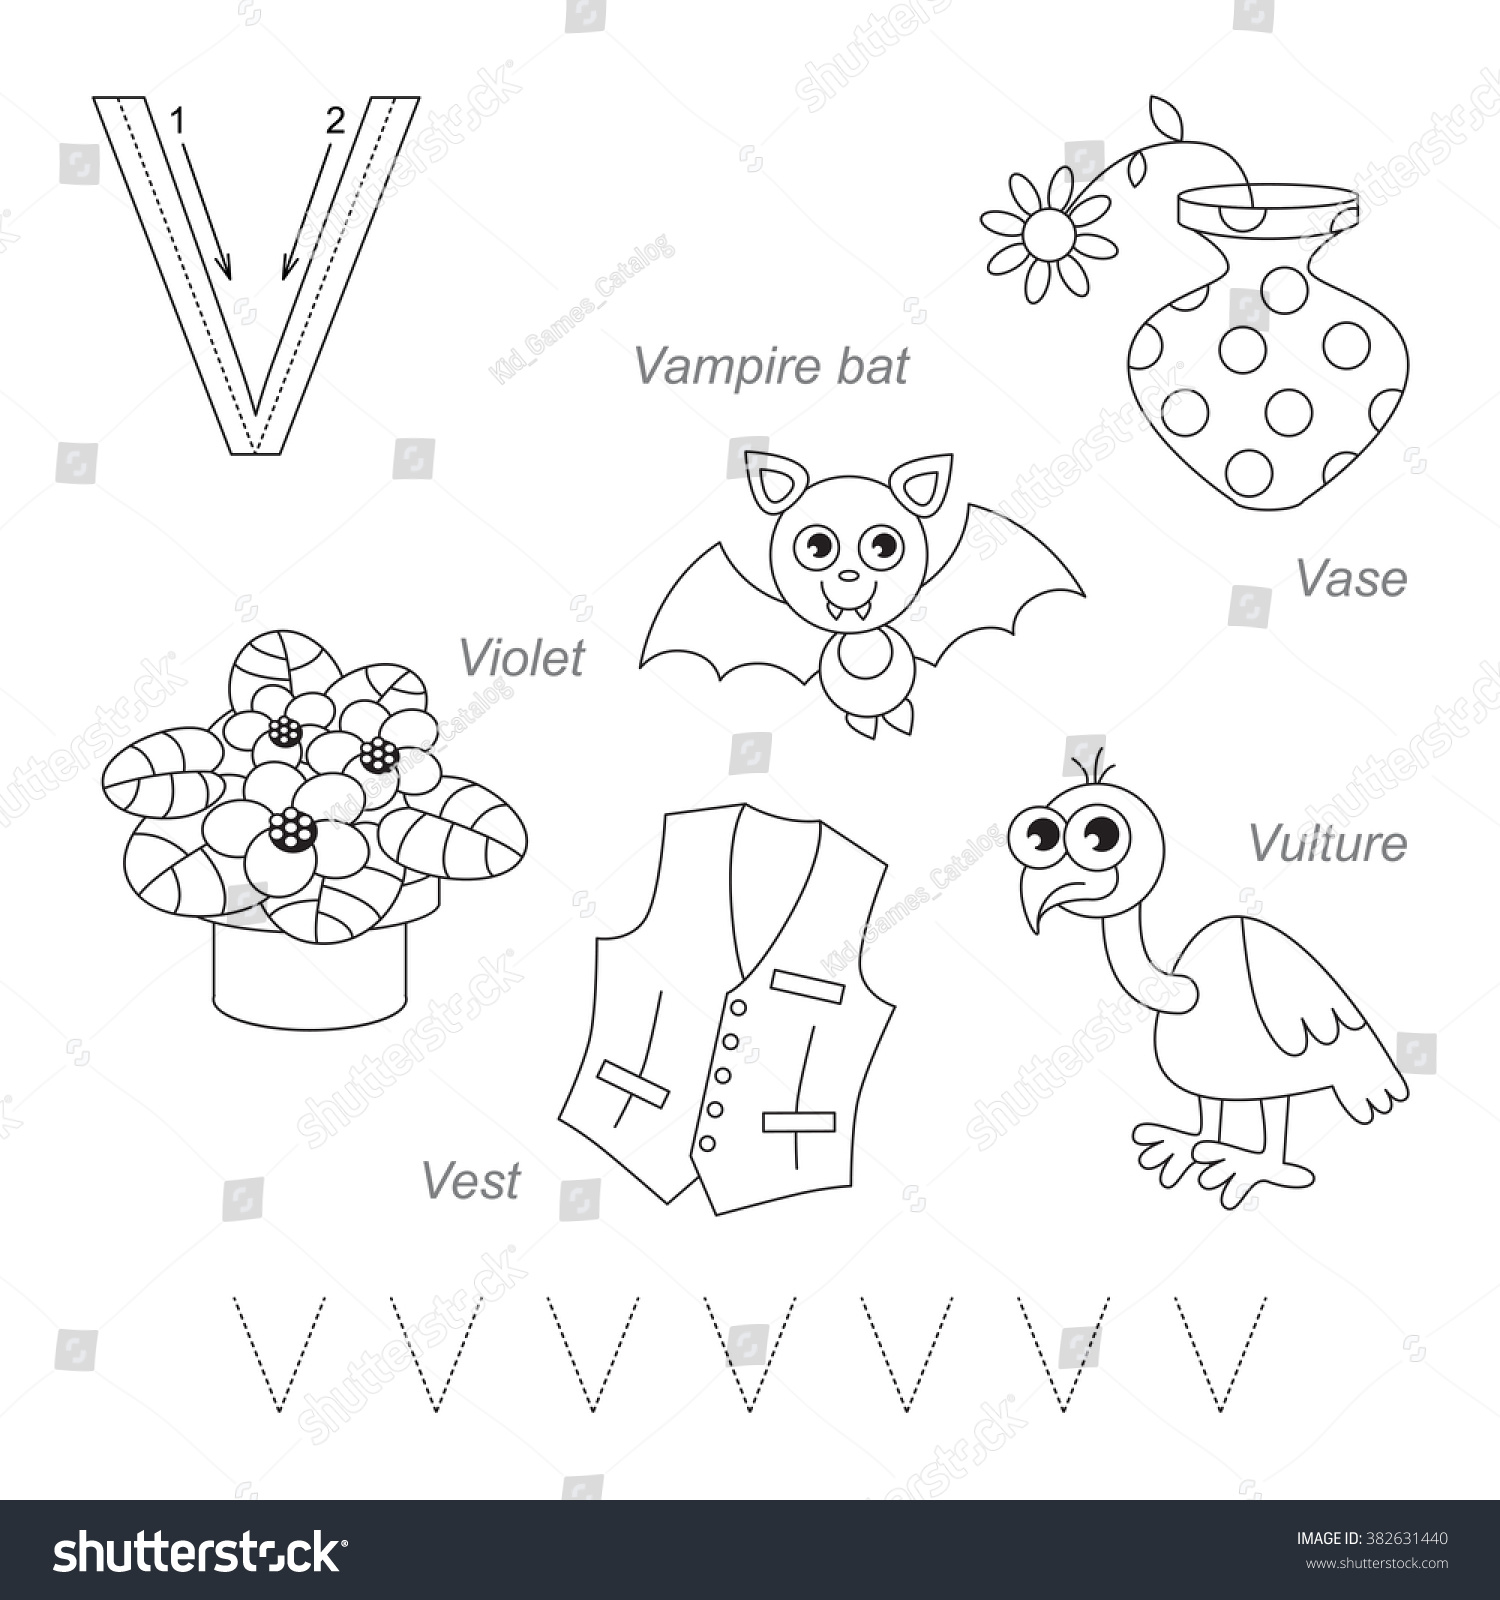 Tracing Worksheet For Children. Full English Alphabet From